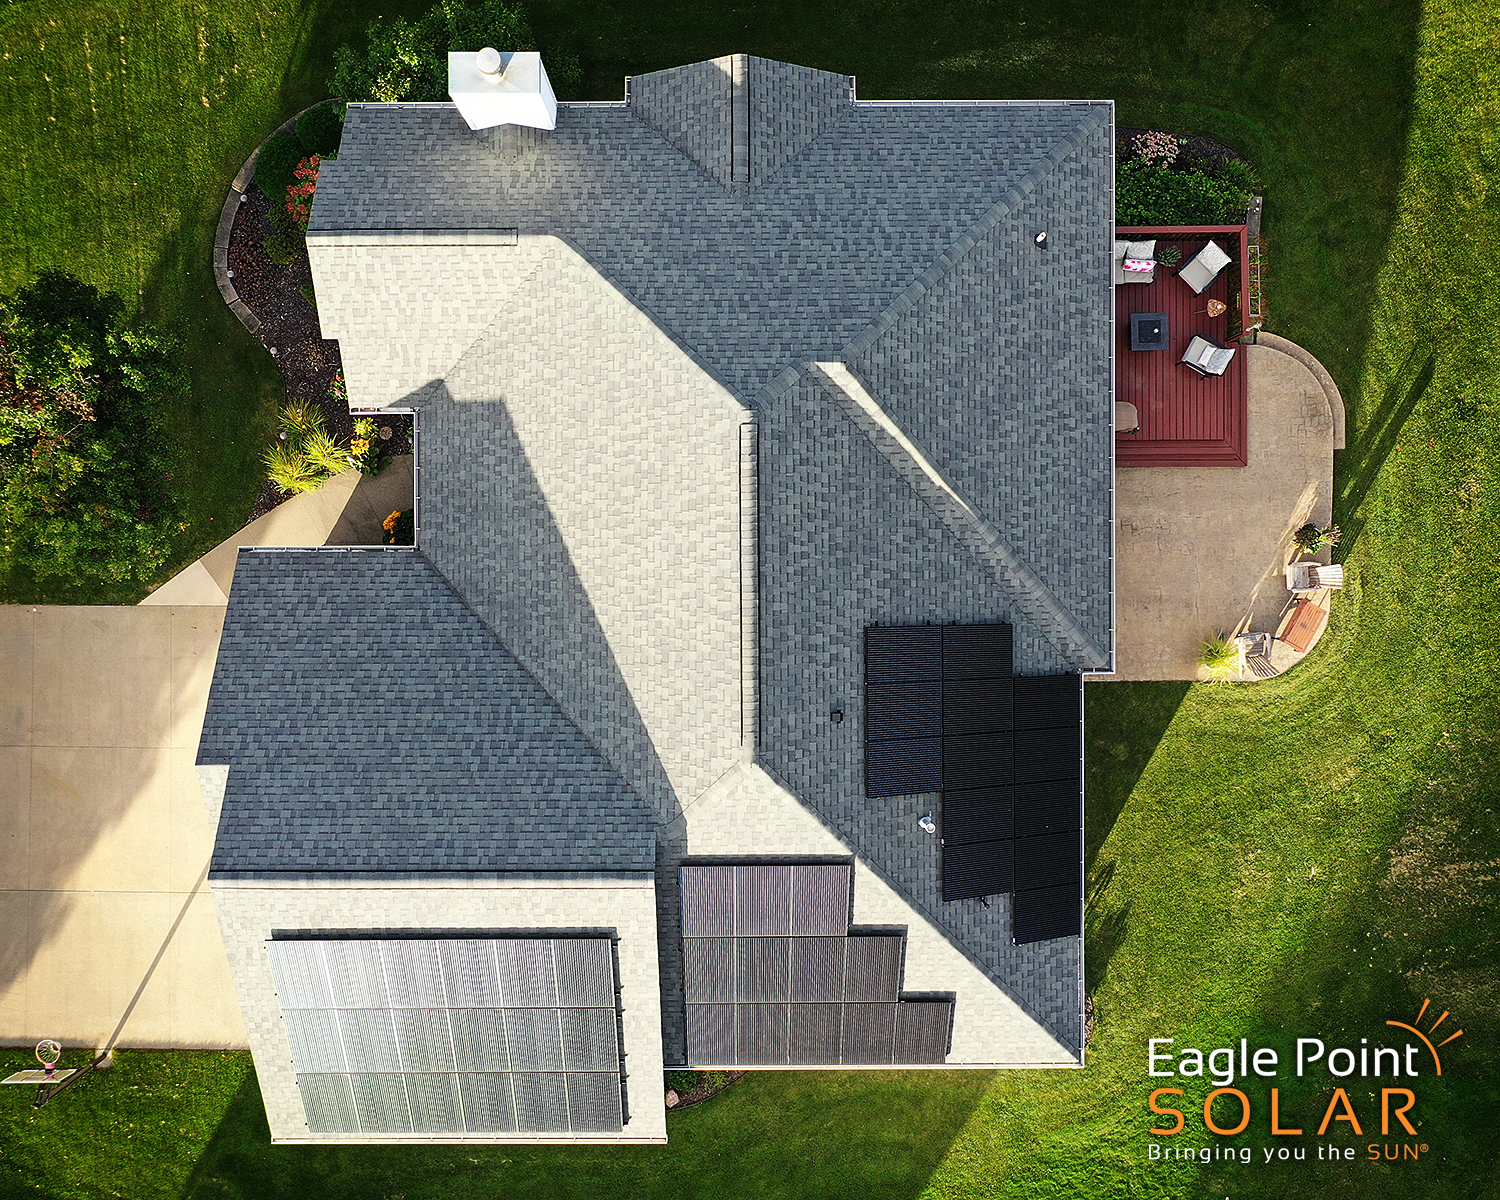 Arial photo of Ambrosy residence roof mounted solar array.